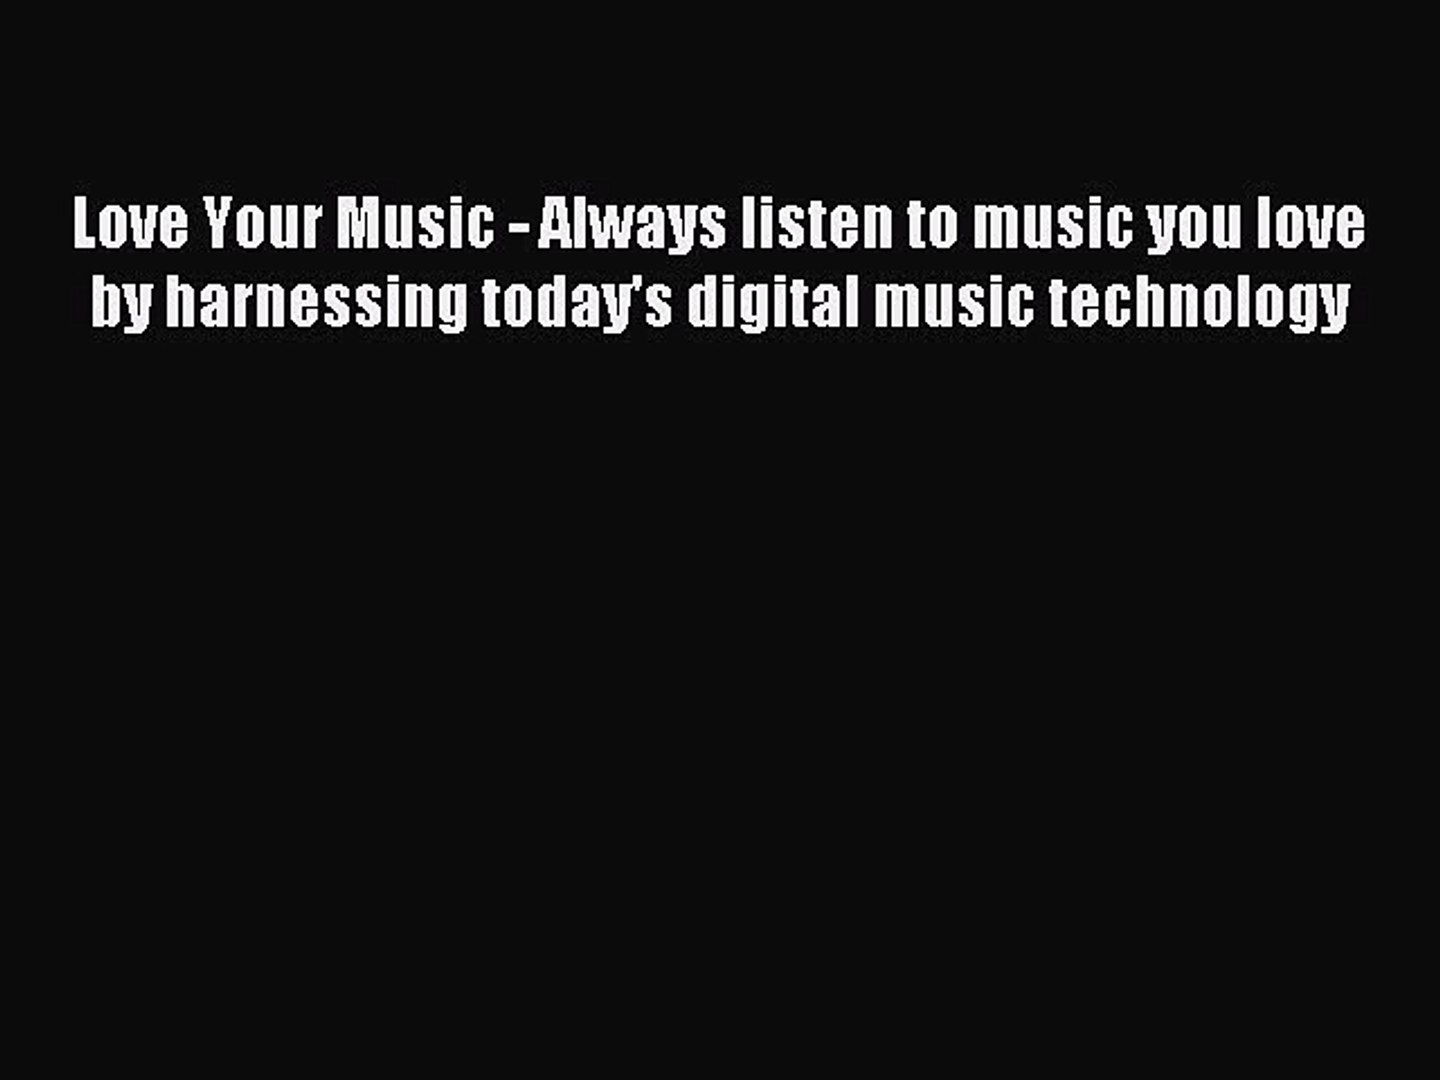 Read Love Your Music - Always listen to music you love by harnessing today's digital music